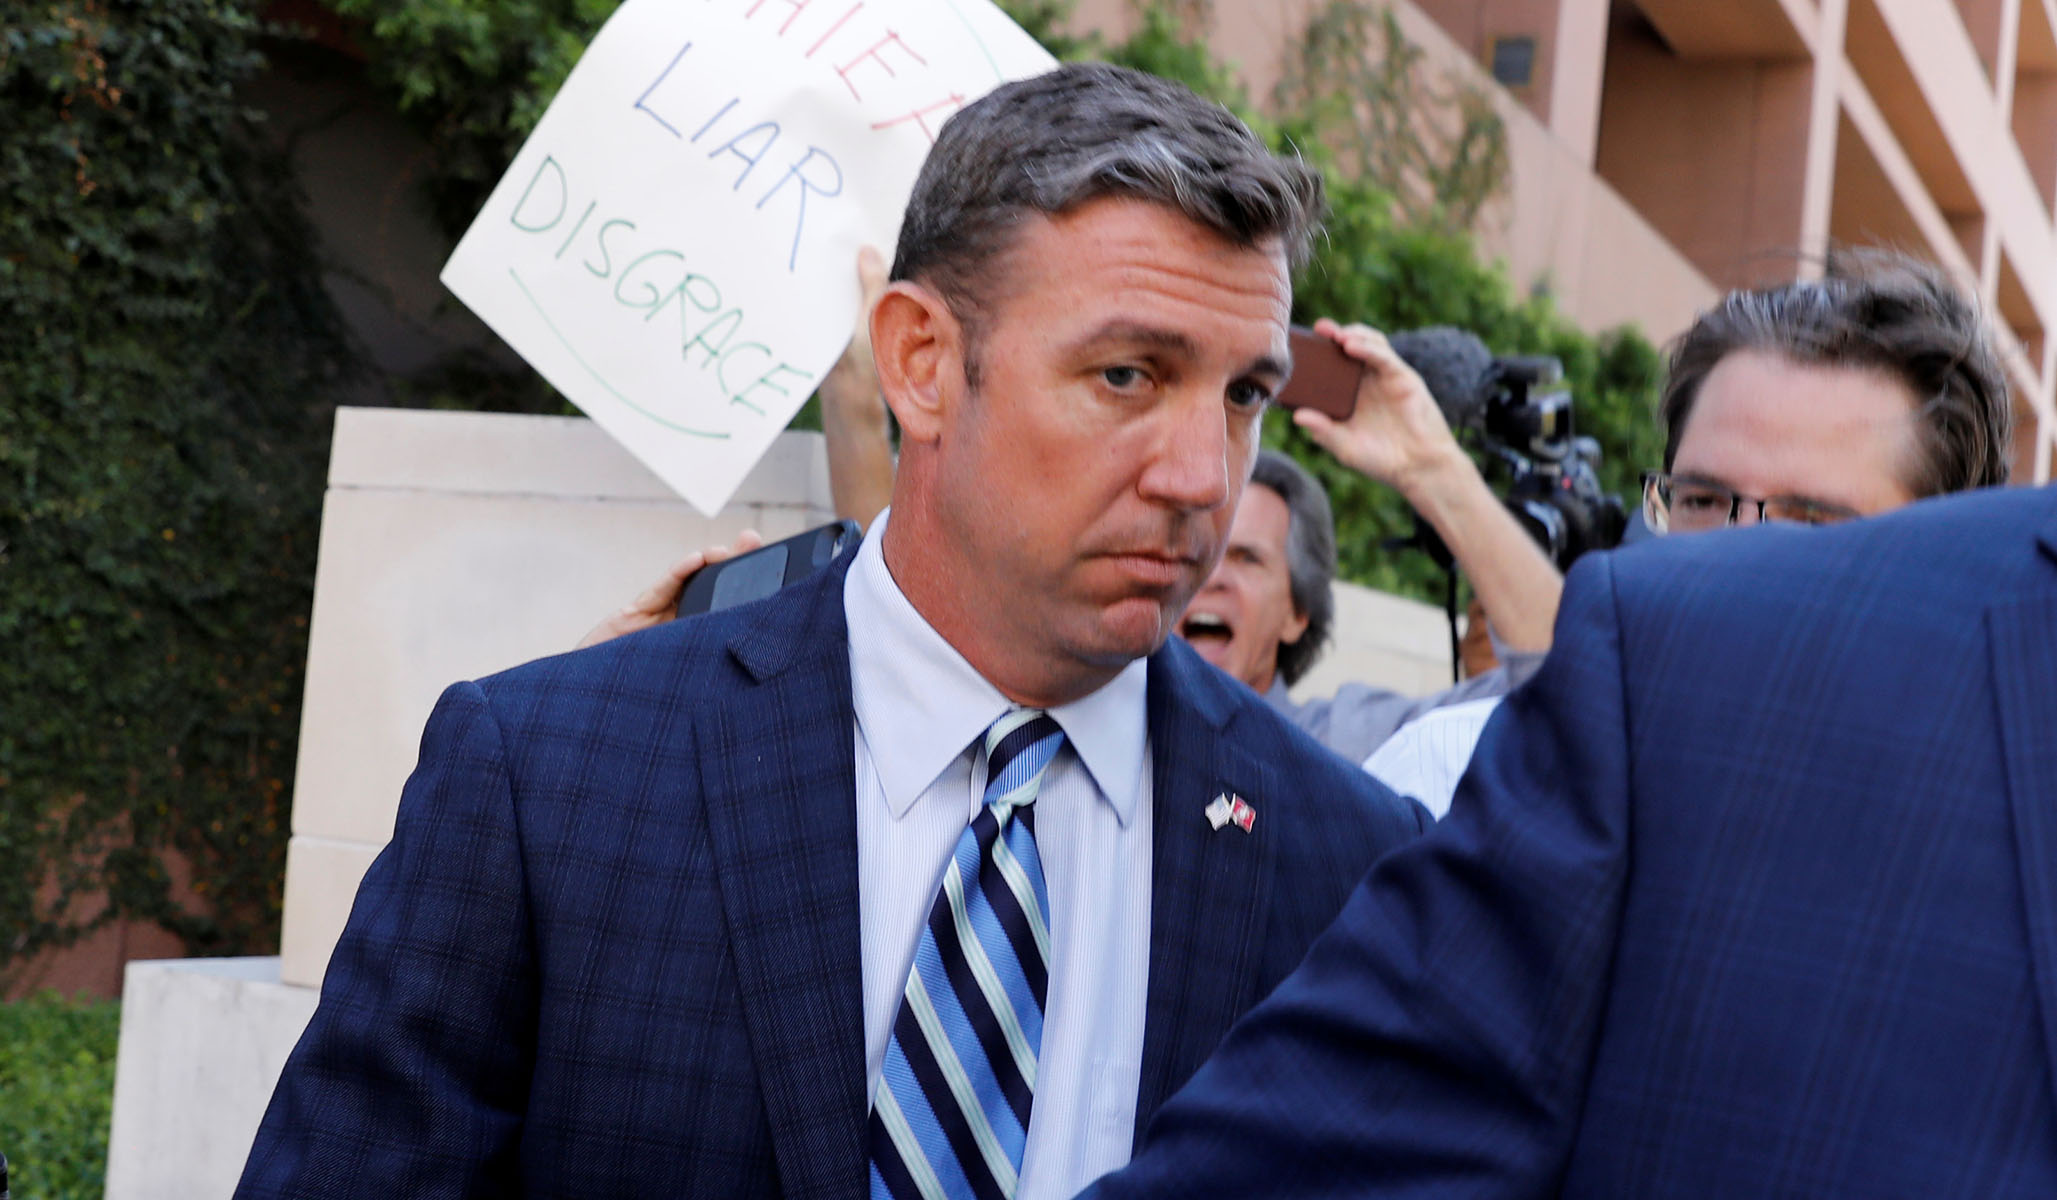 Rep. Duncan Hunter Shows no Signs of Resigning Despite Pleading Guilty to Campaign Finance Charges